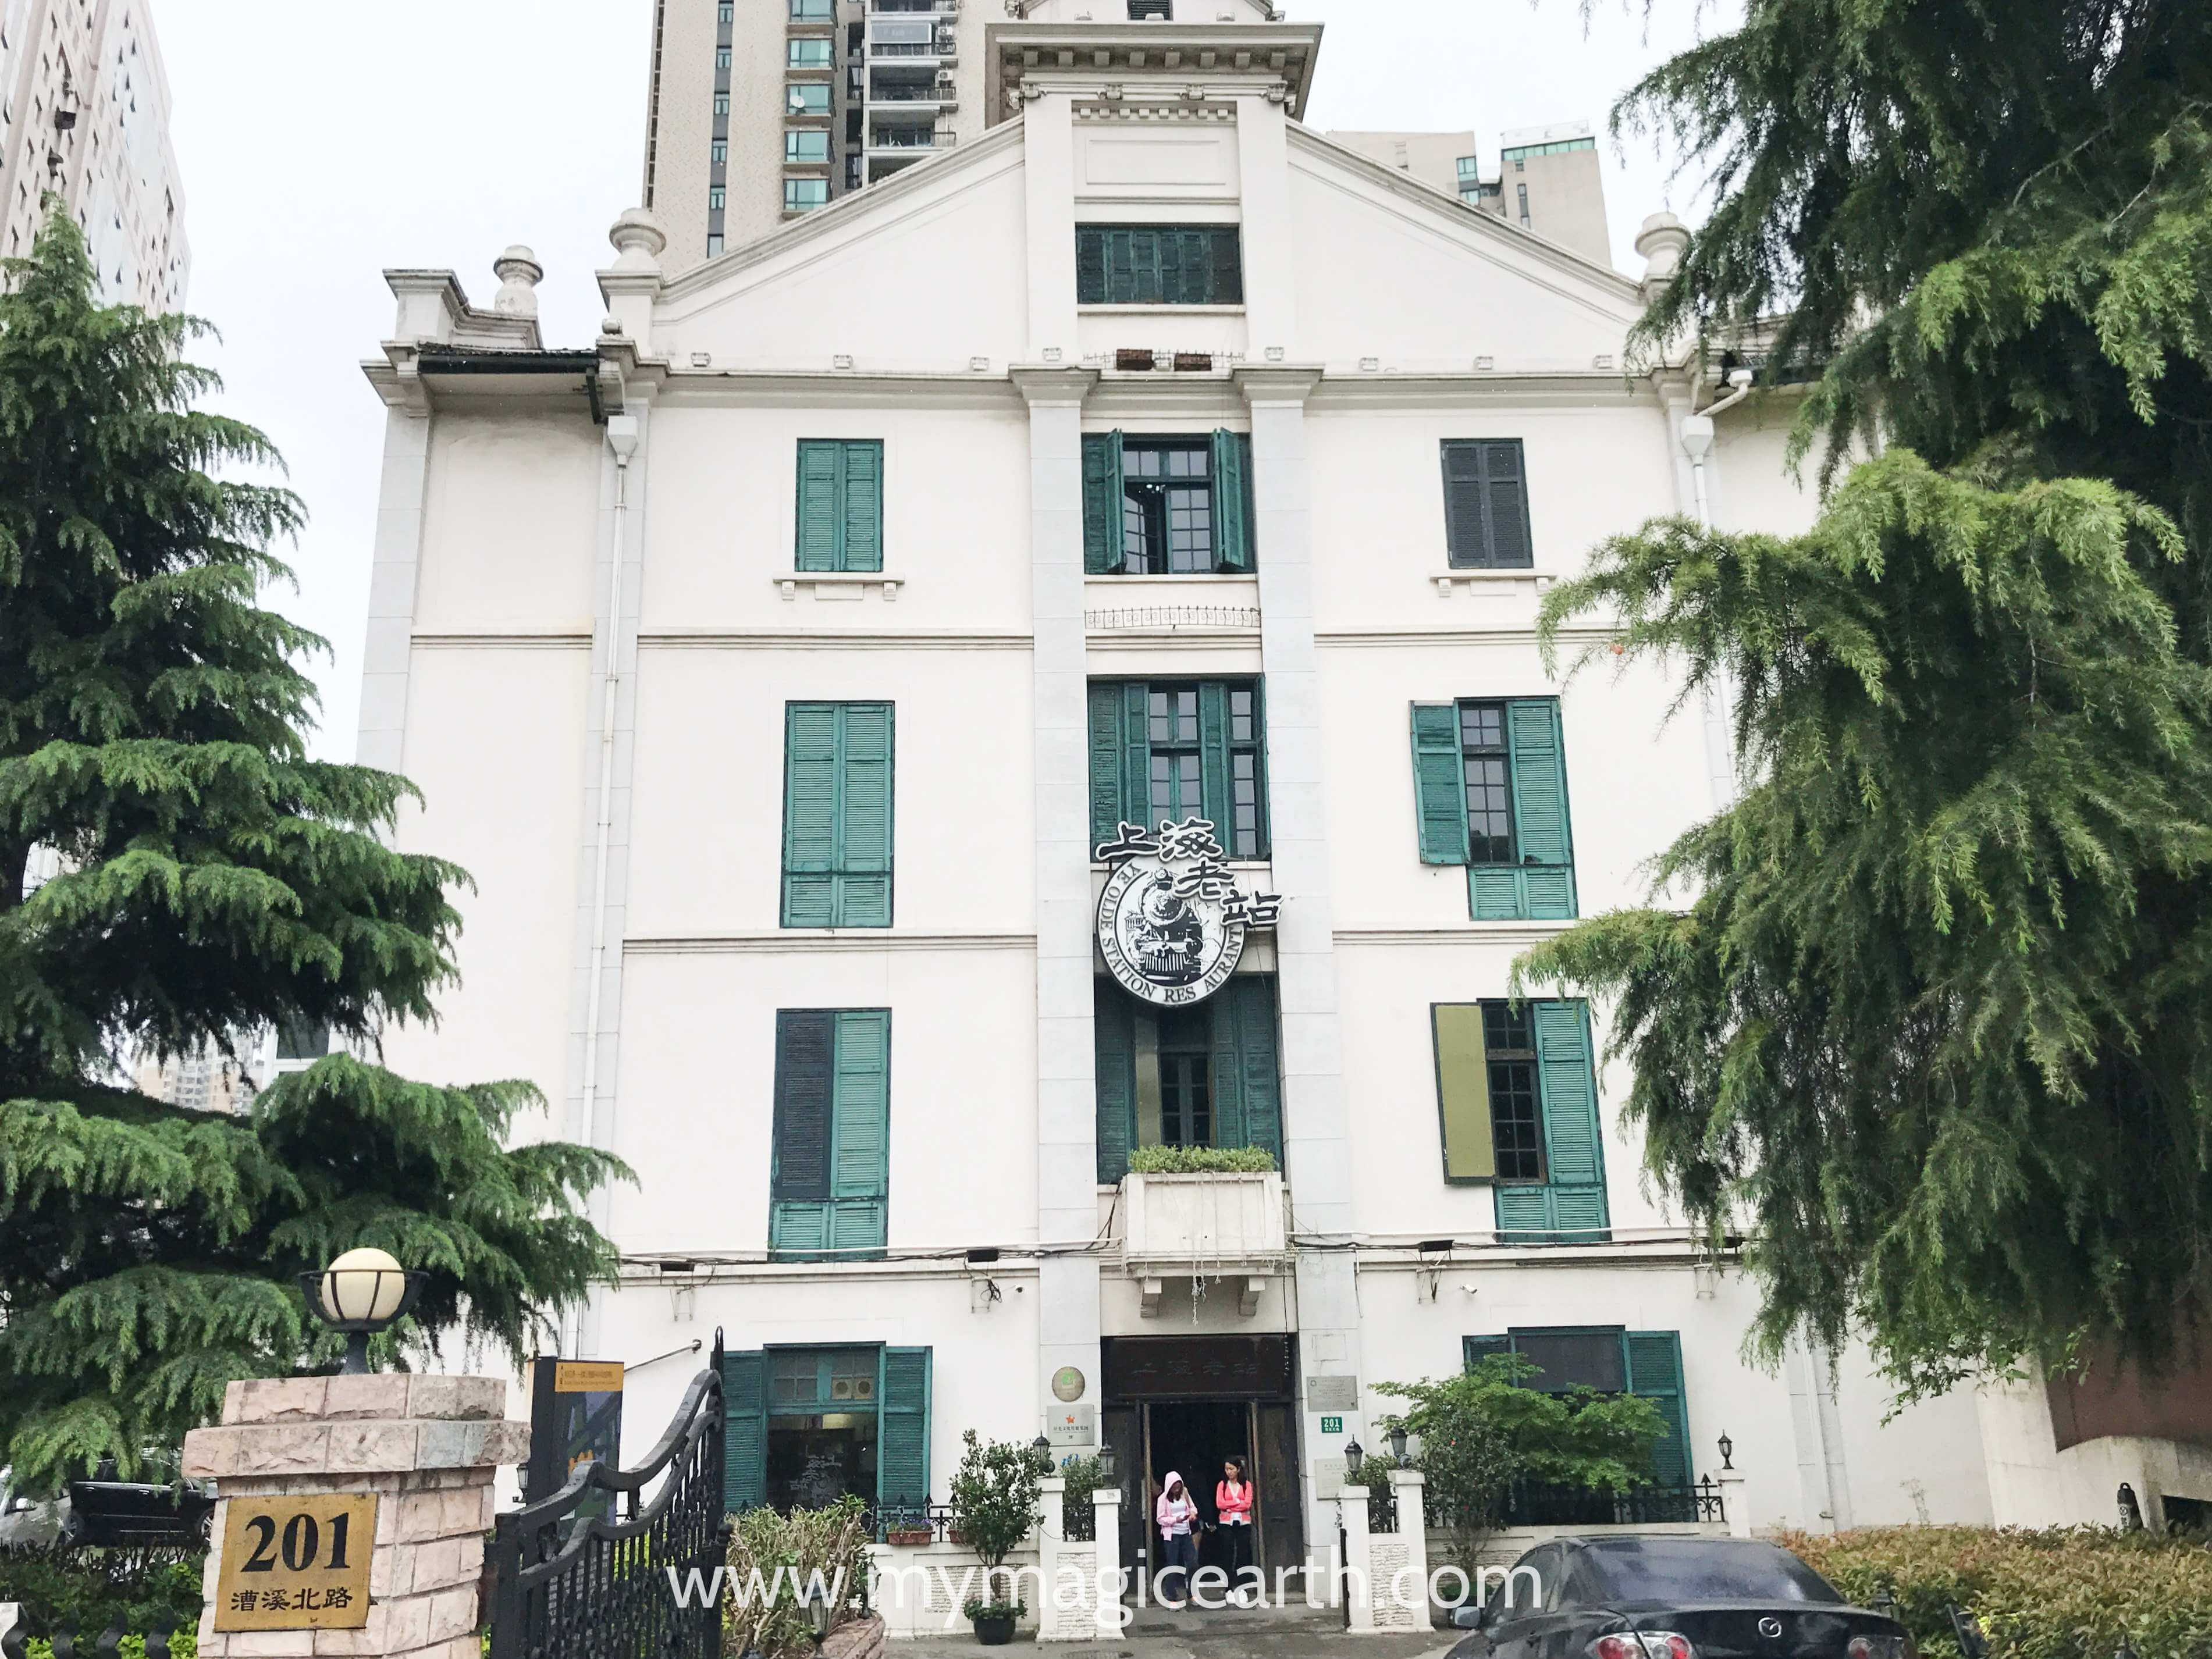 This 5-story white building is part of the Notre Dame in Shanghai